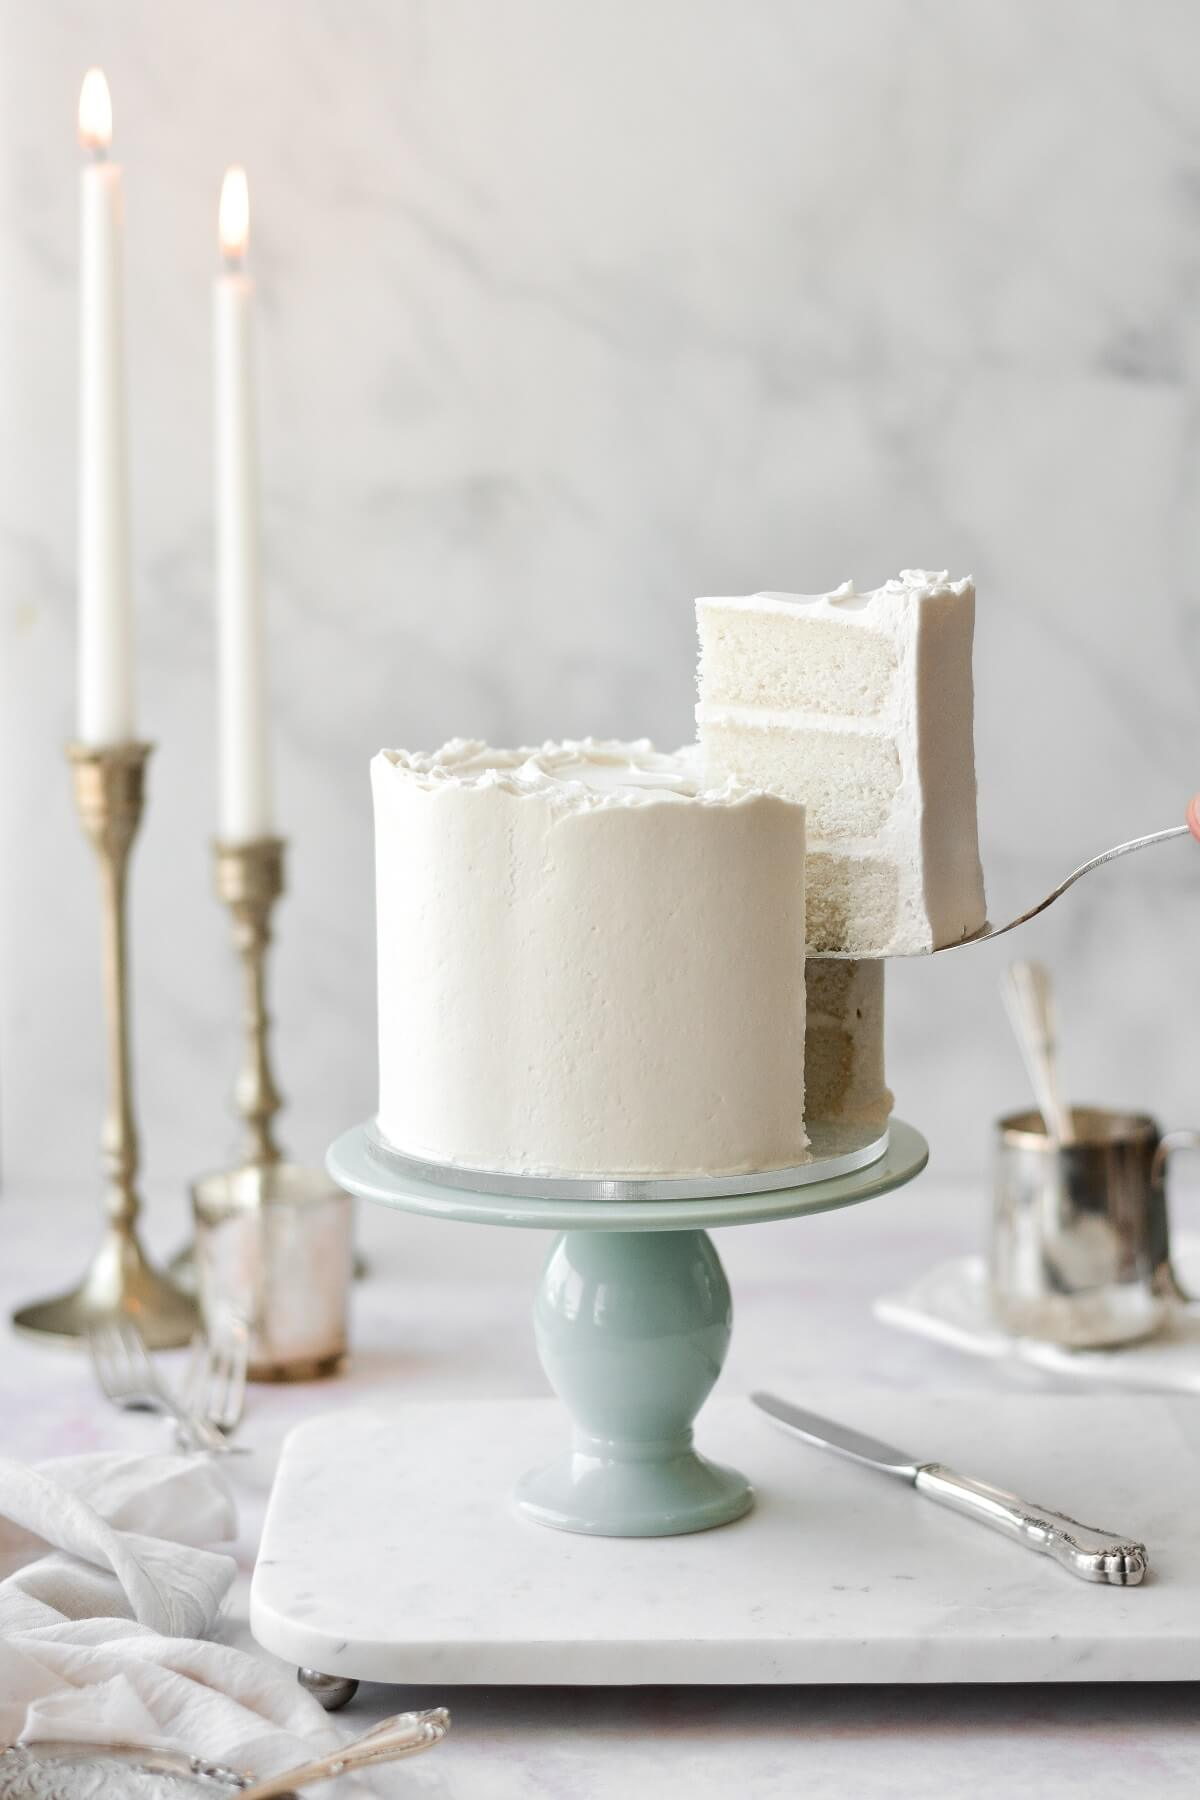 White velvet cake frosted with perfect American buttercream, on a sage green cake stand, with a piece being lifted out by a silver cake server.